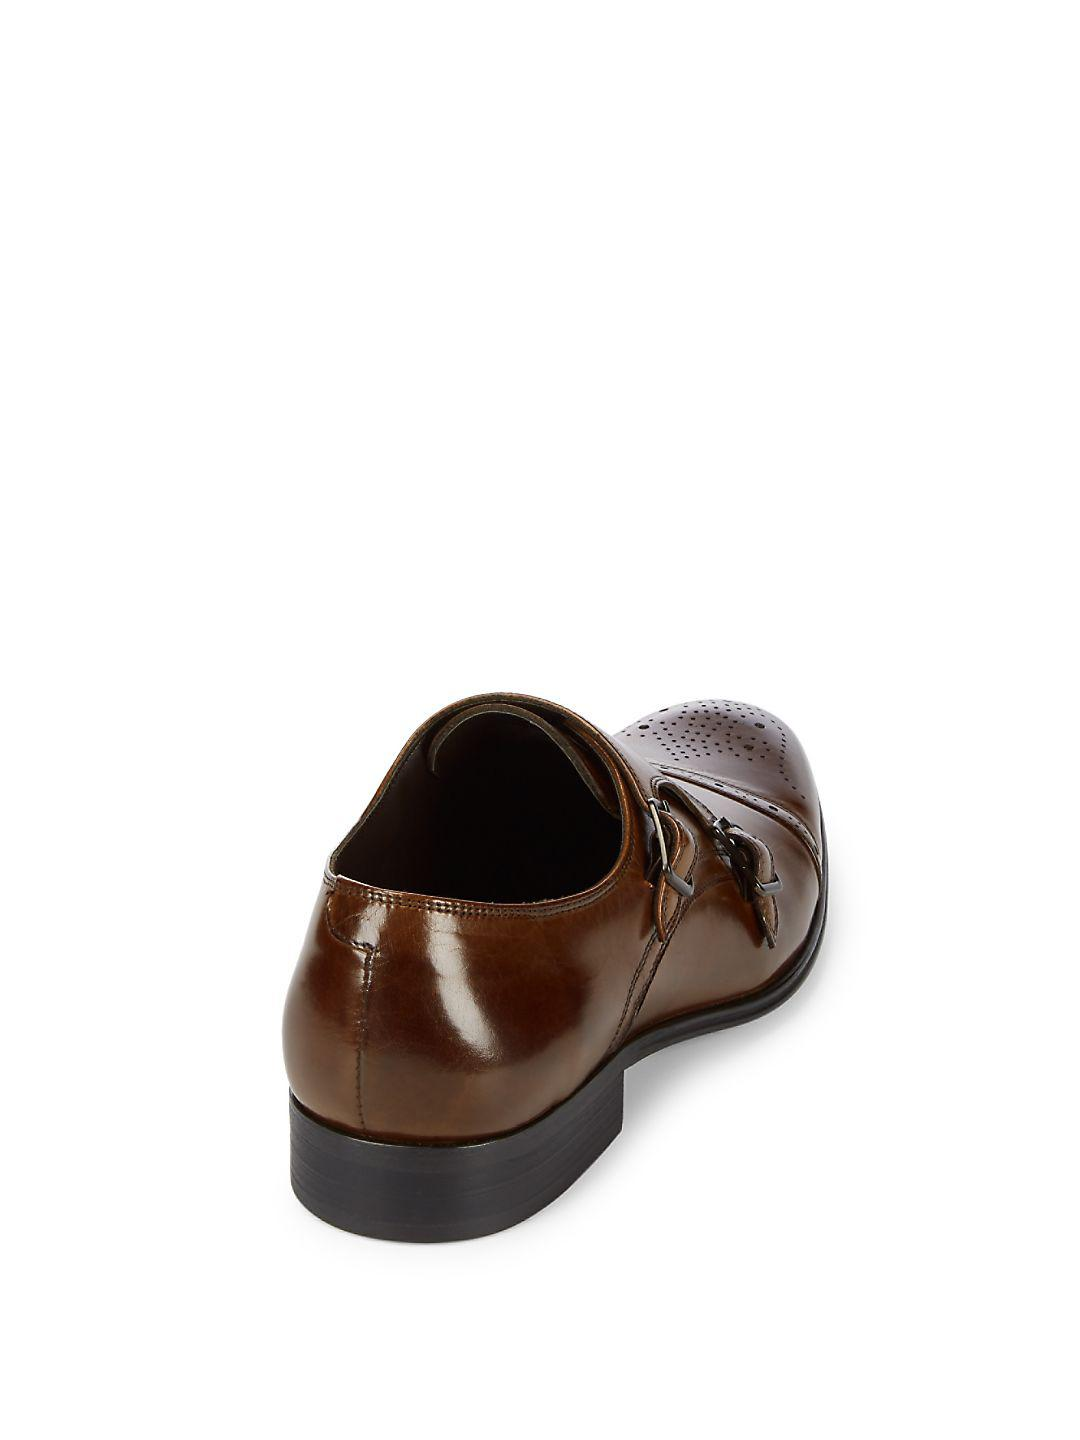 Kenneth Cole Double Monk-strap Leather Dress Shoes in Cognac (Brown) for Men